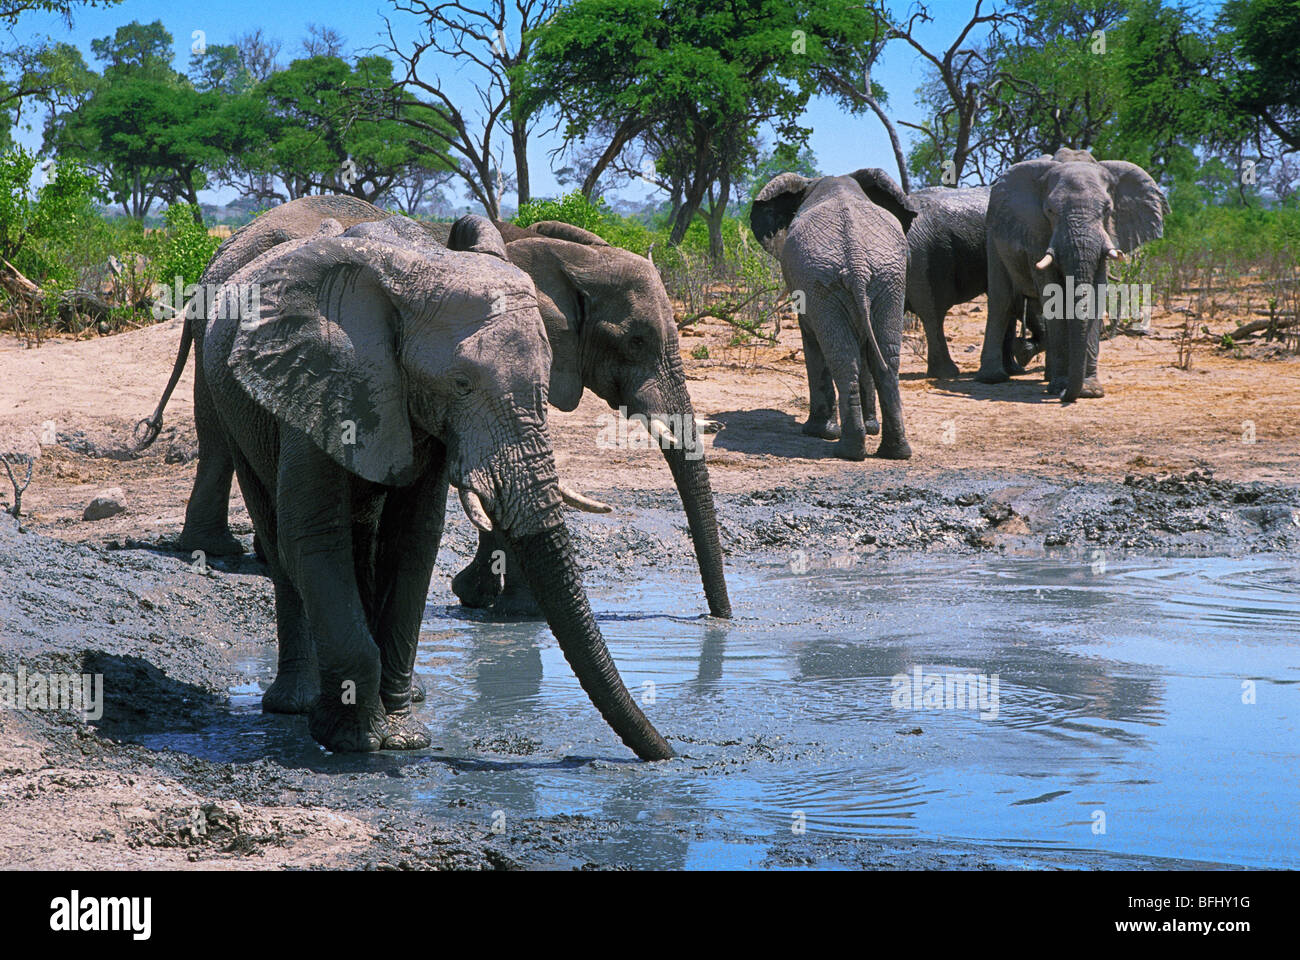 Elephants (Elephantidae) at watering hole, Savuti, Chobe National Park, Botswana, Africa Stock Photo